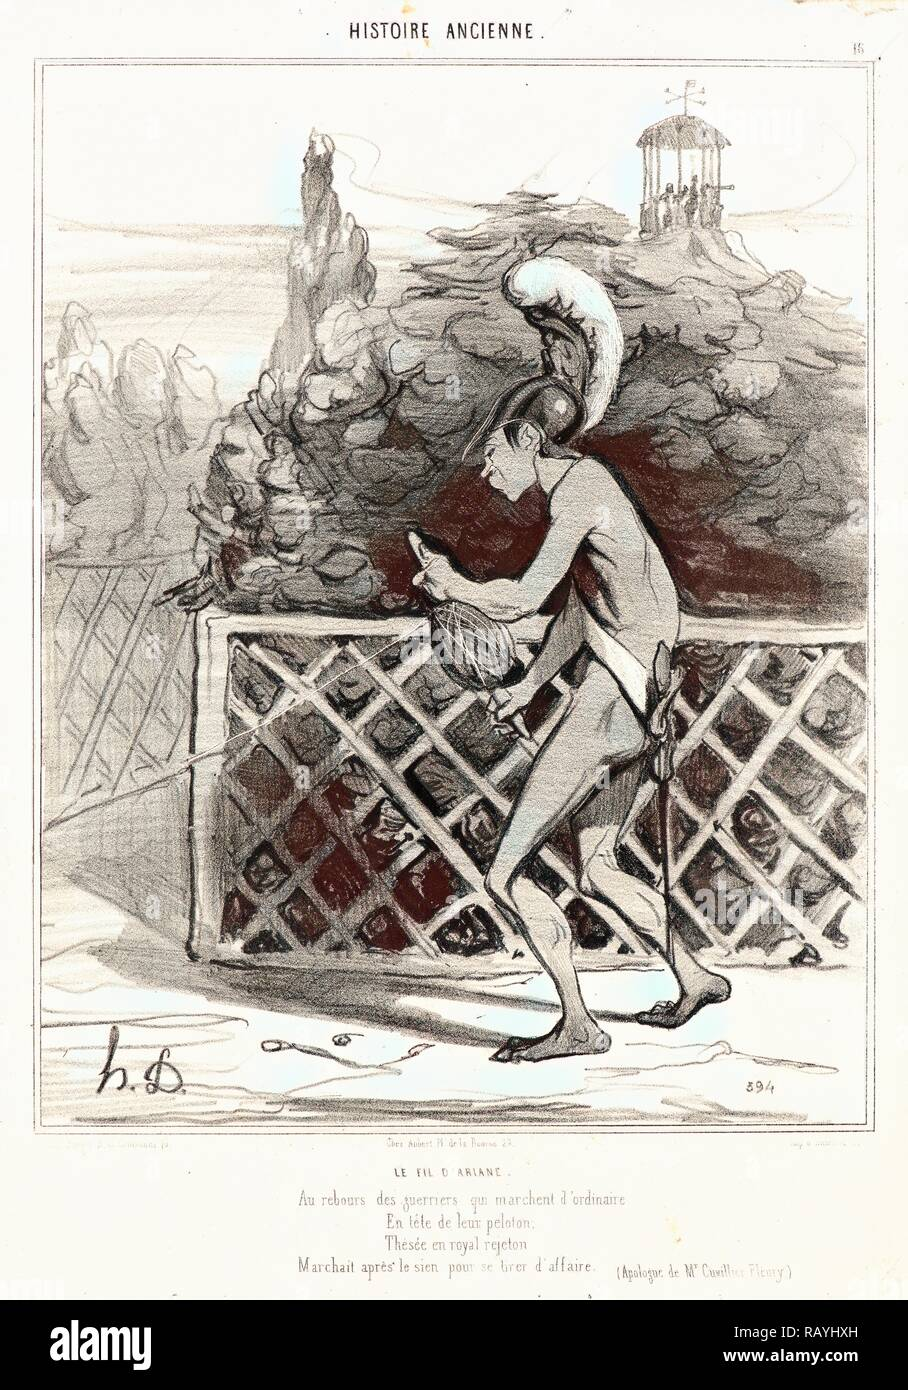 Honoré Daumier (French, 1808 - 1879). Le fil d'Ariane, 1842. From Histoire Ancienne. Lithograph on white wove paper reimagined Stock Photo